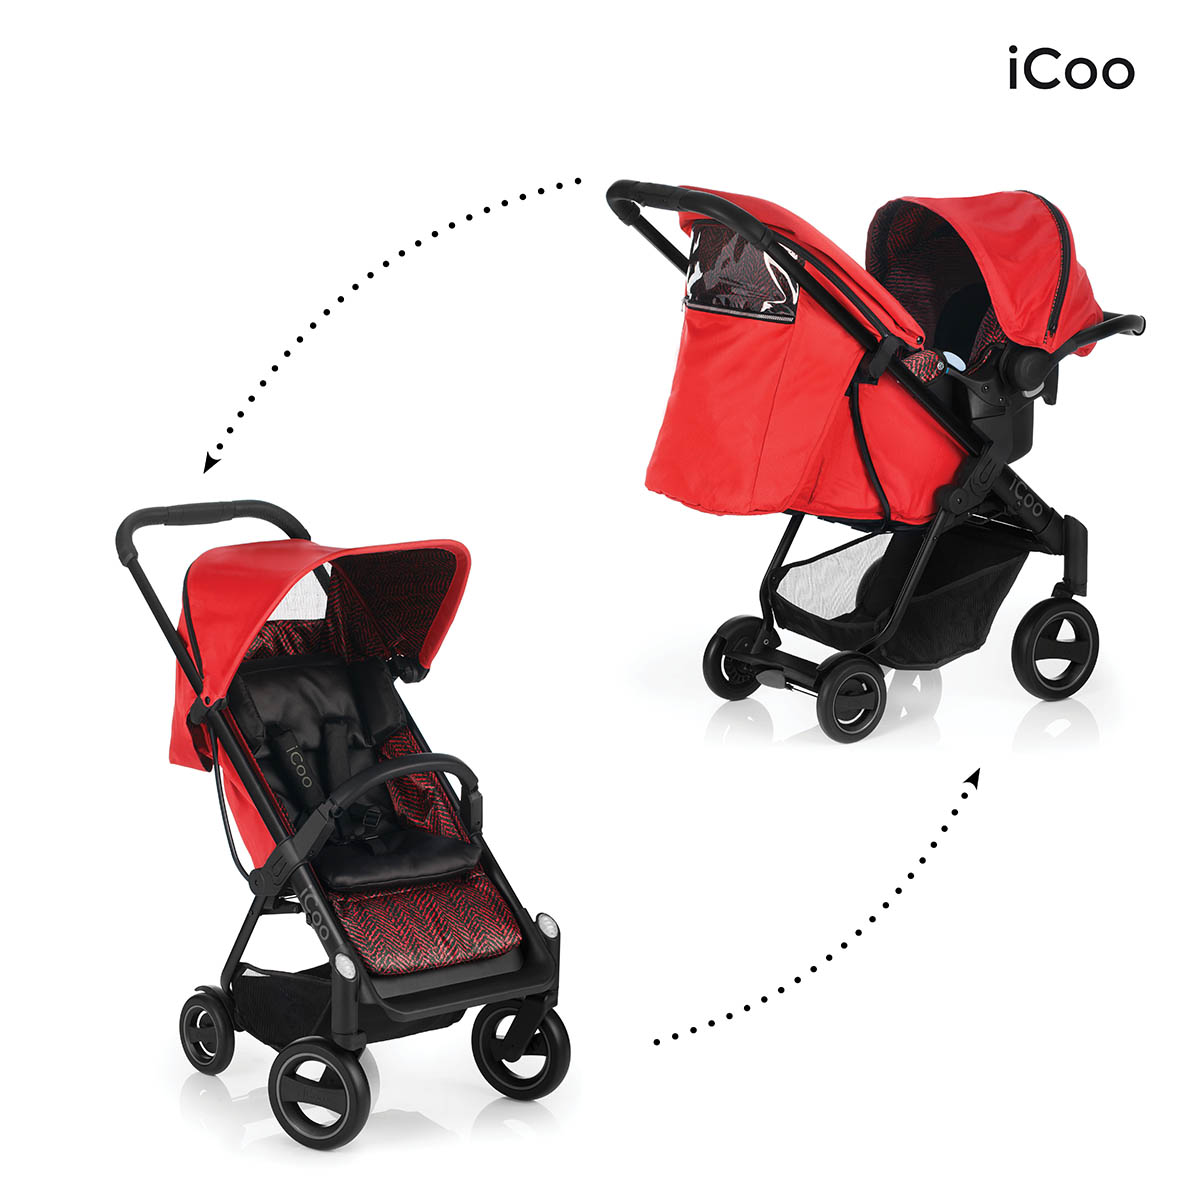 Set Carucior Acrobat Shop'n Drive Fishbone Red - Icoo